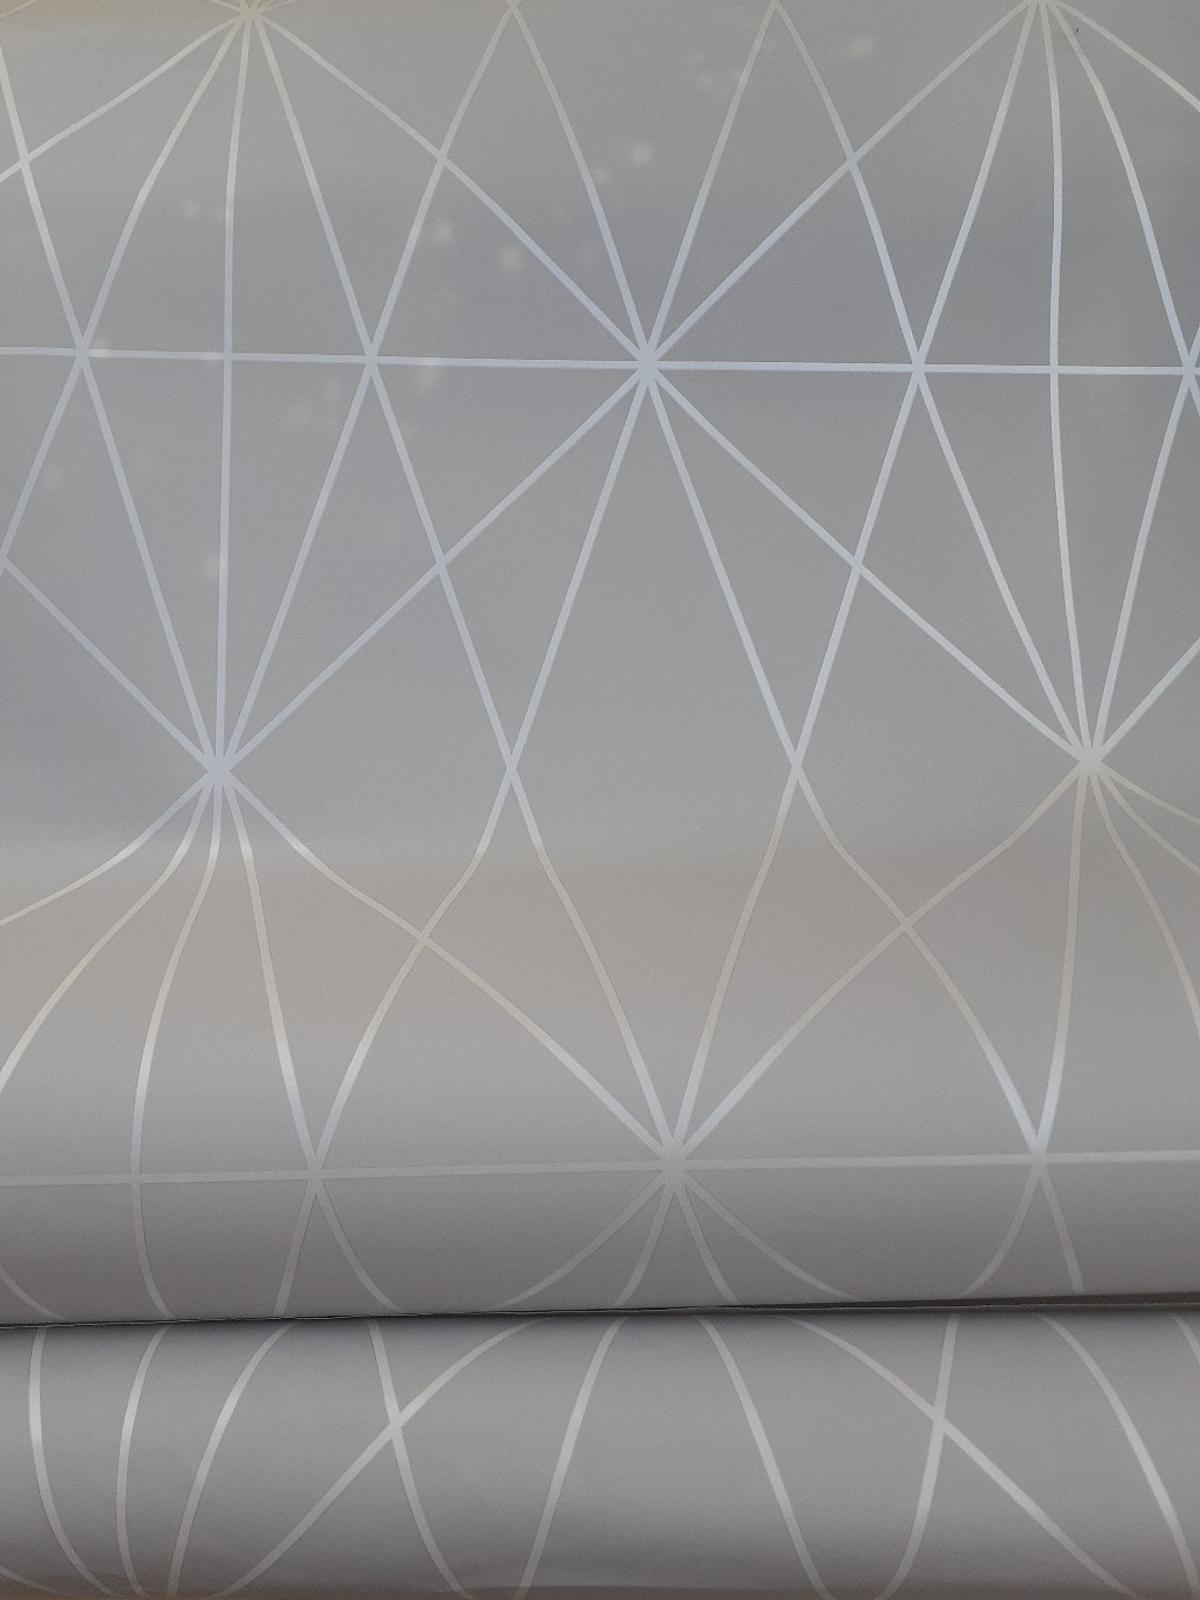 Silver Grey Feature Wallpaper X2 Rolls In Dy5 Dudley For 8 00 For Sale Shpock